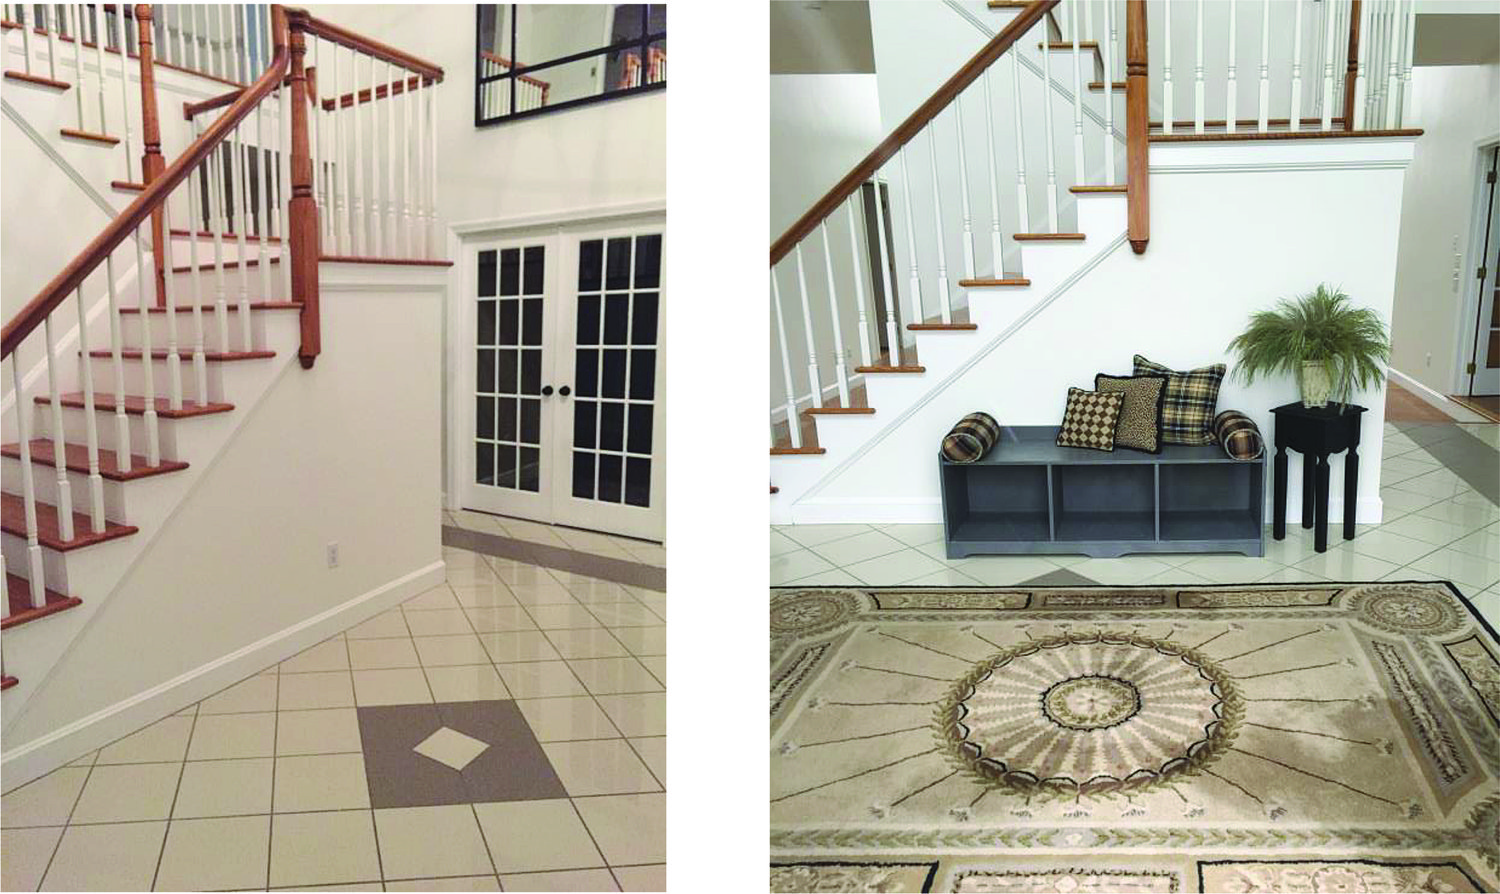 A few small changes bring life and interest to a large foyer.